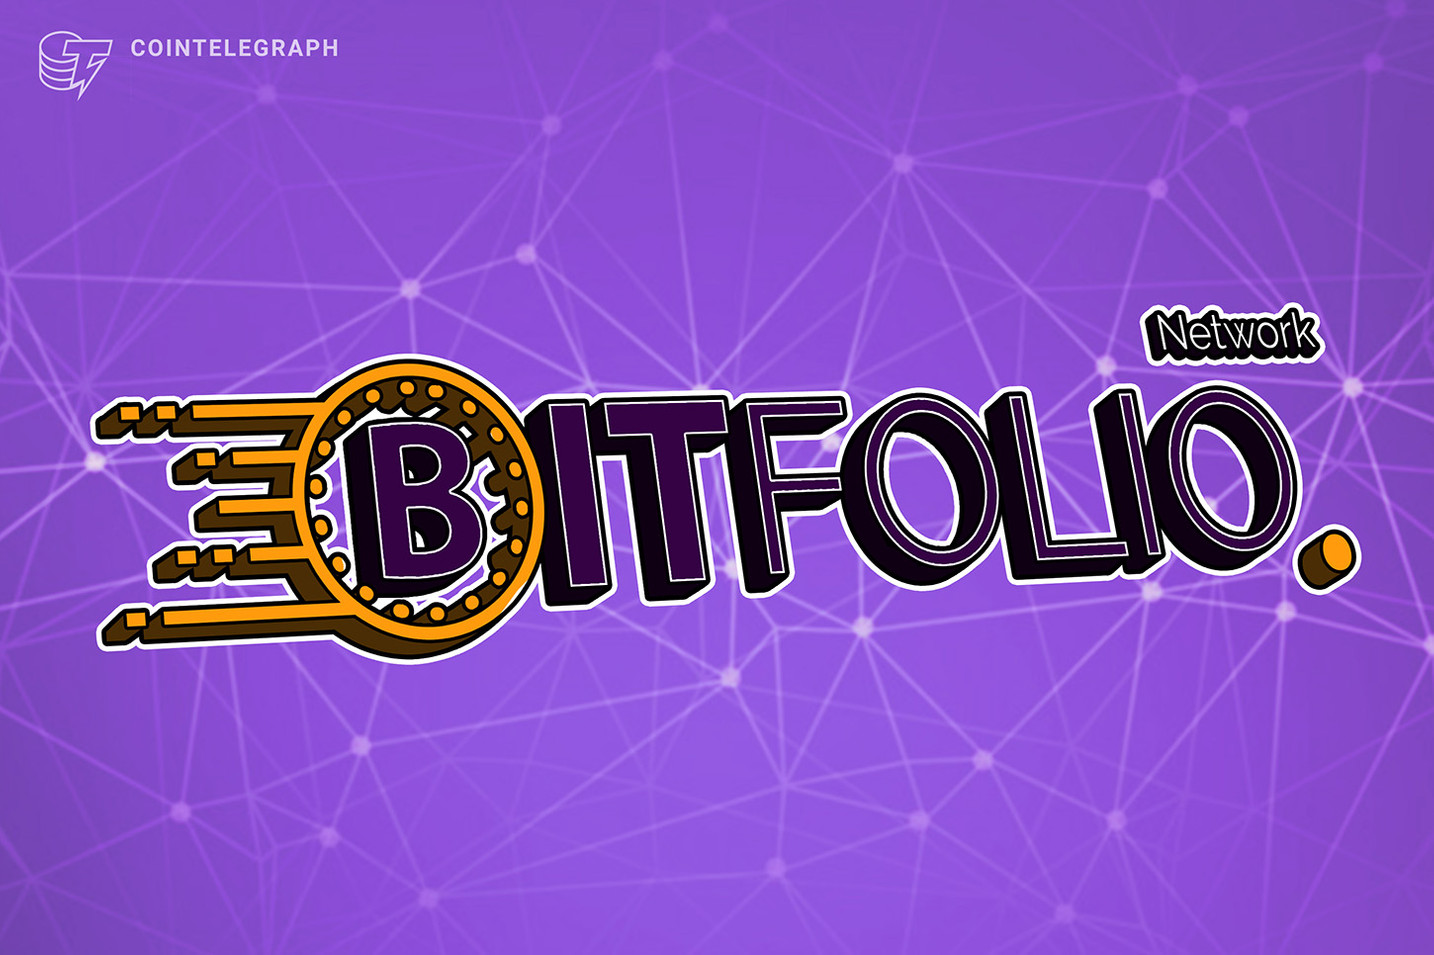 Bitfolio is building a wide range of financial systems